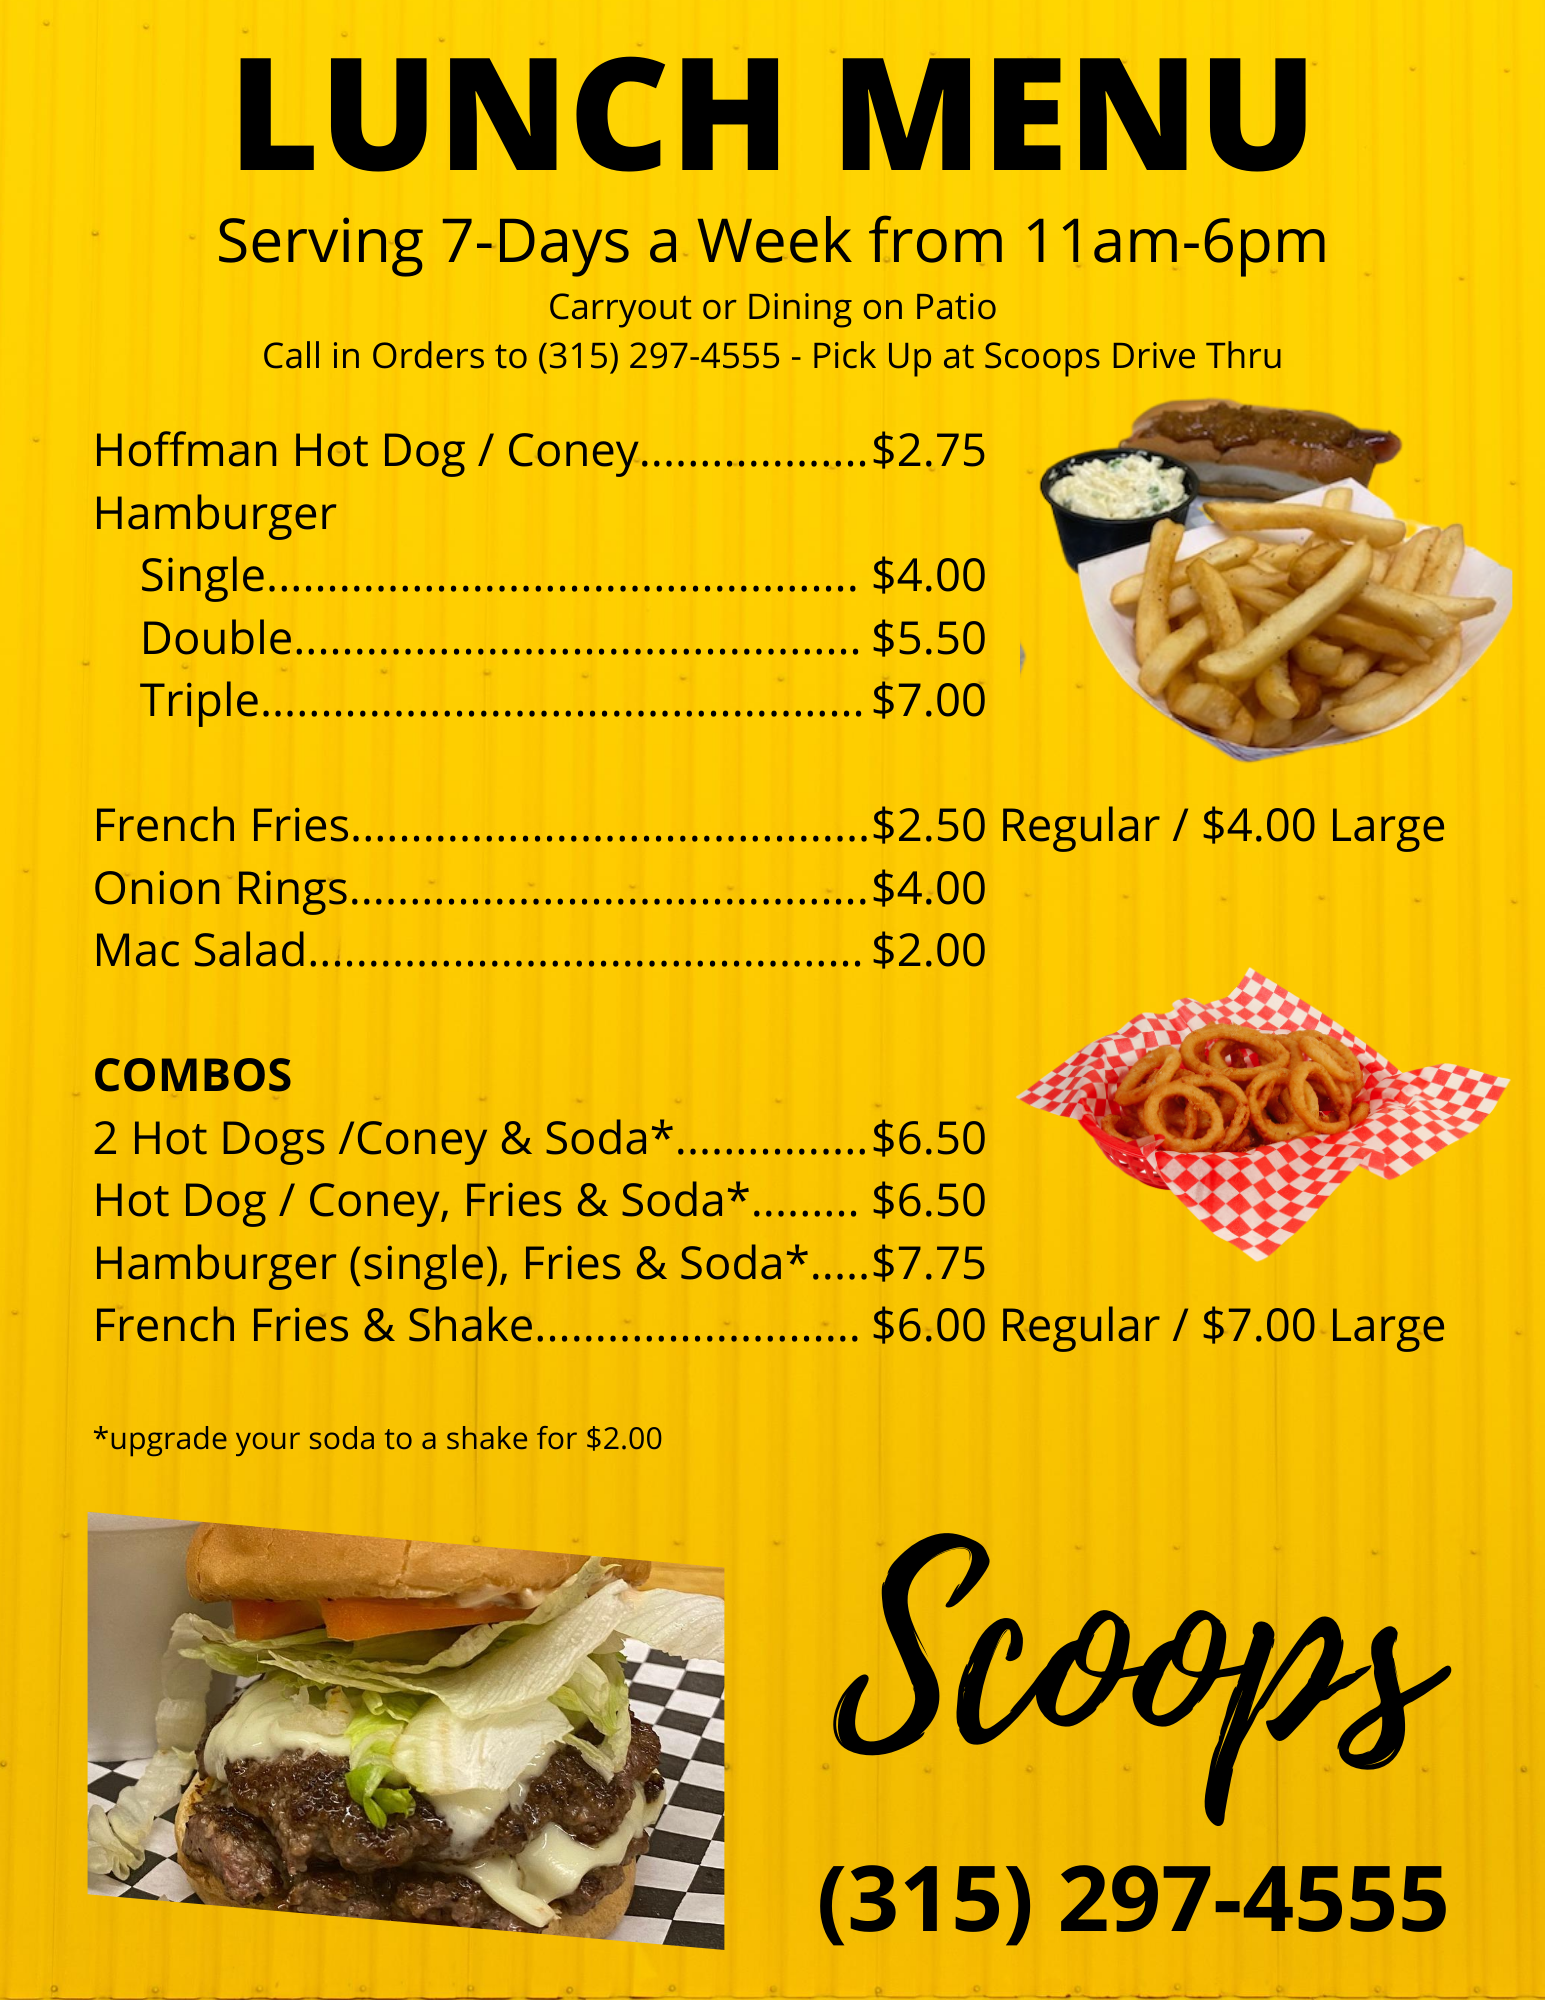 Scoops-LUNCH MENU-7days